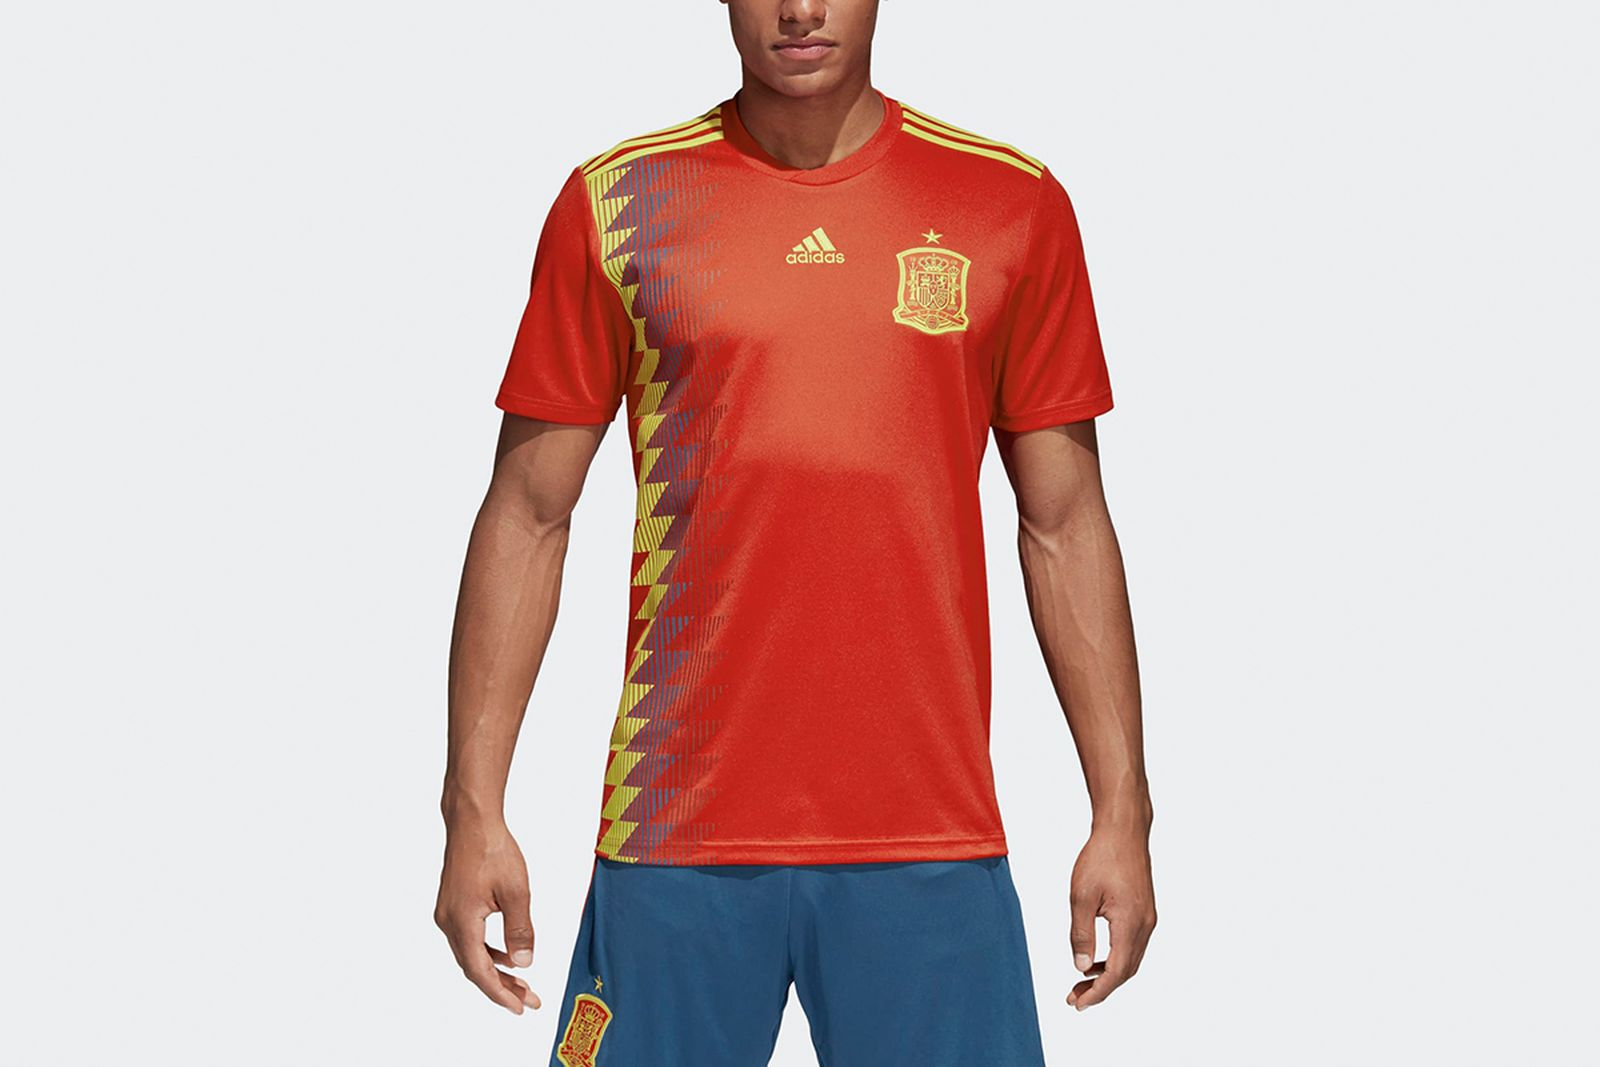 Spain Home Jersey Red CX5355 21 model 2018 FIFA World Cup Adidas